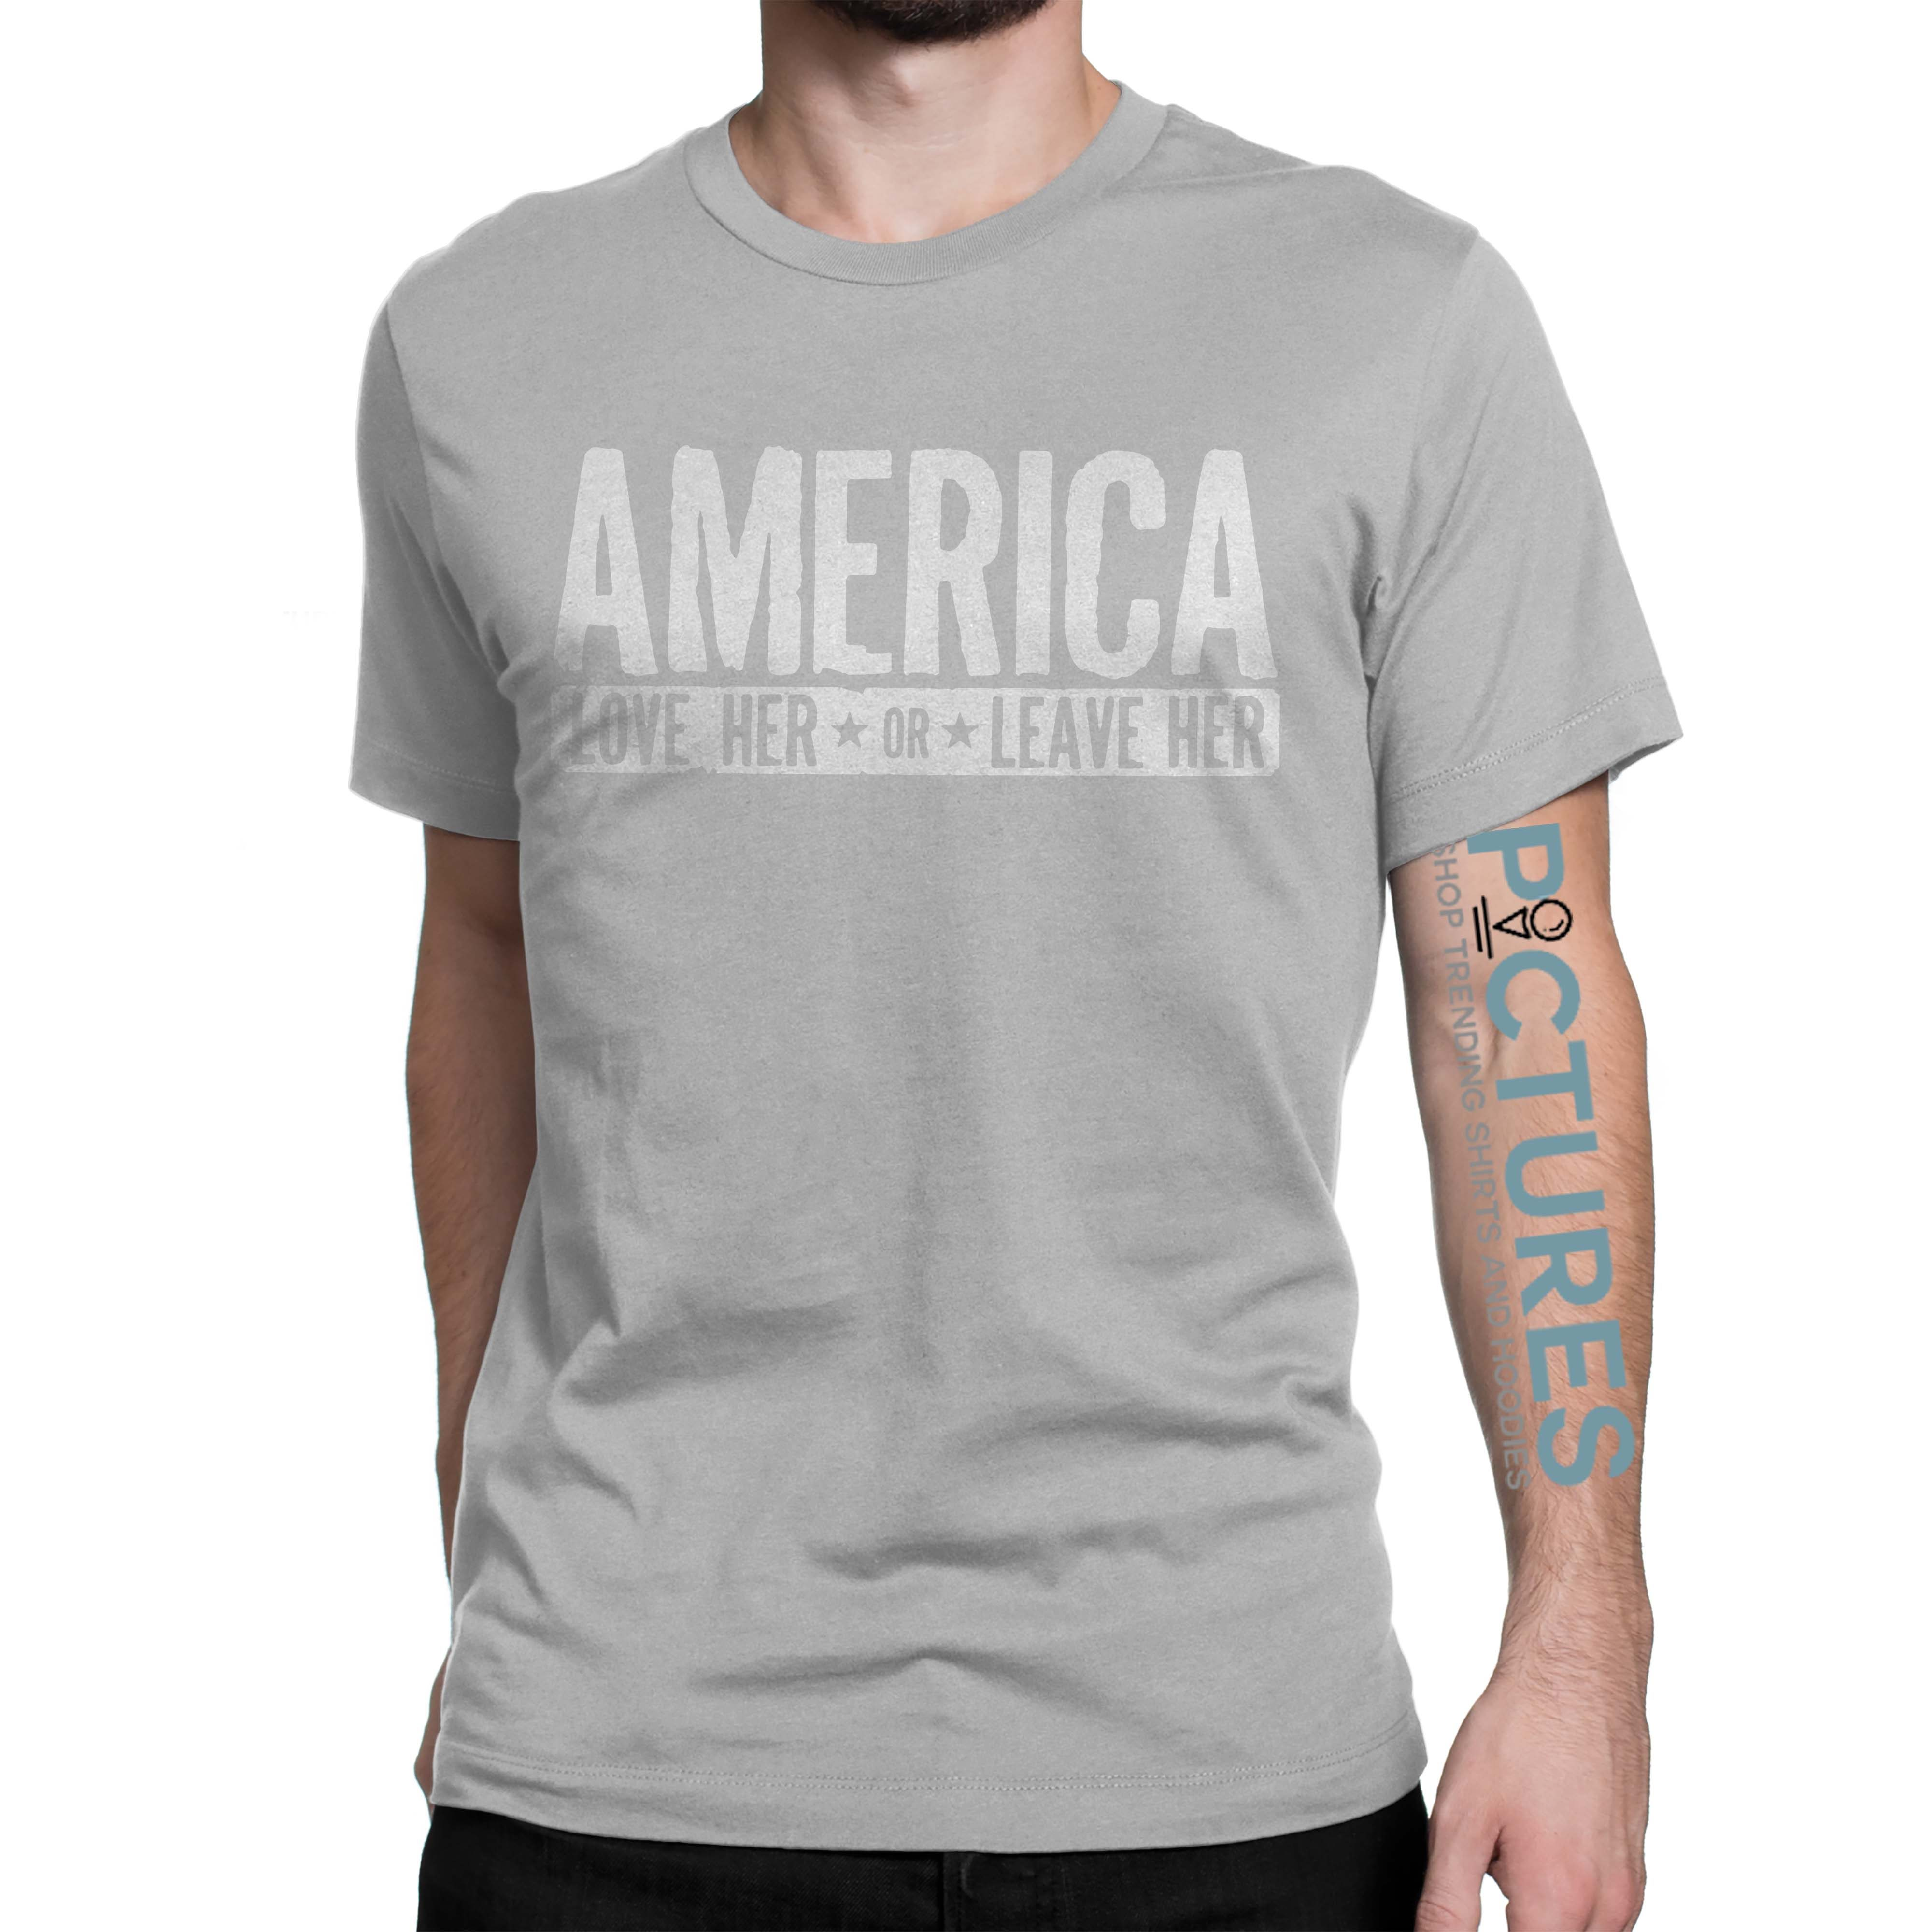 AMERICA Love her or leave her workout shirt